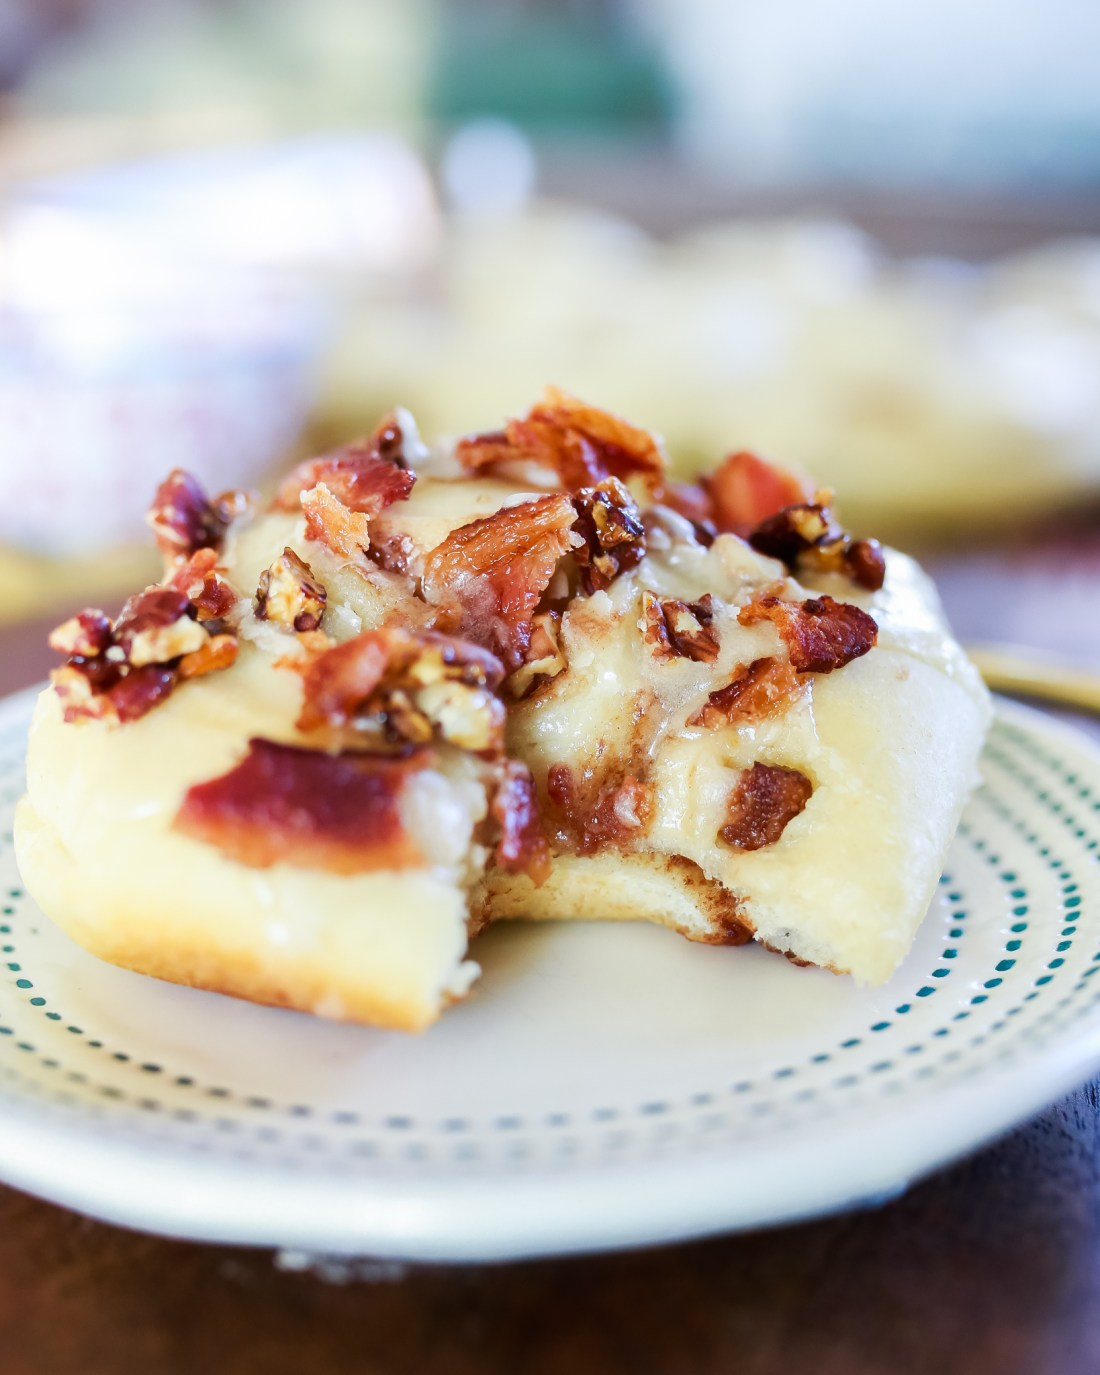 The most divine maple bacon cinnamon rolls recipe!